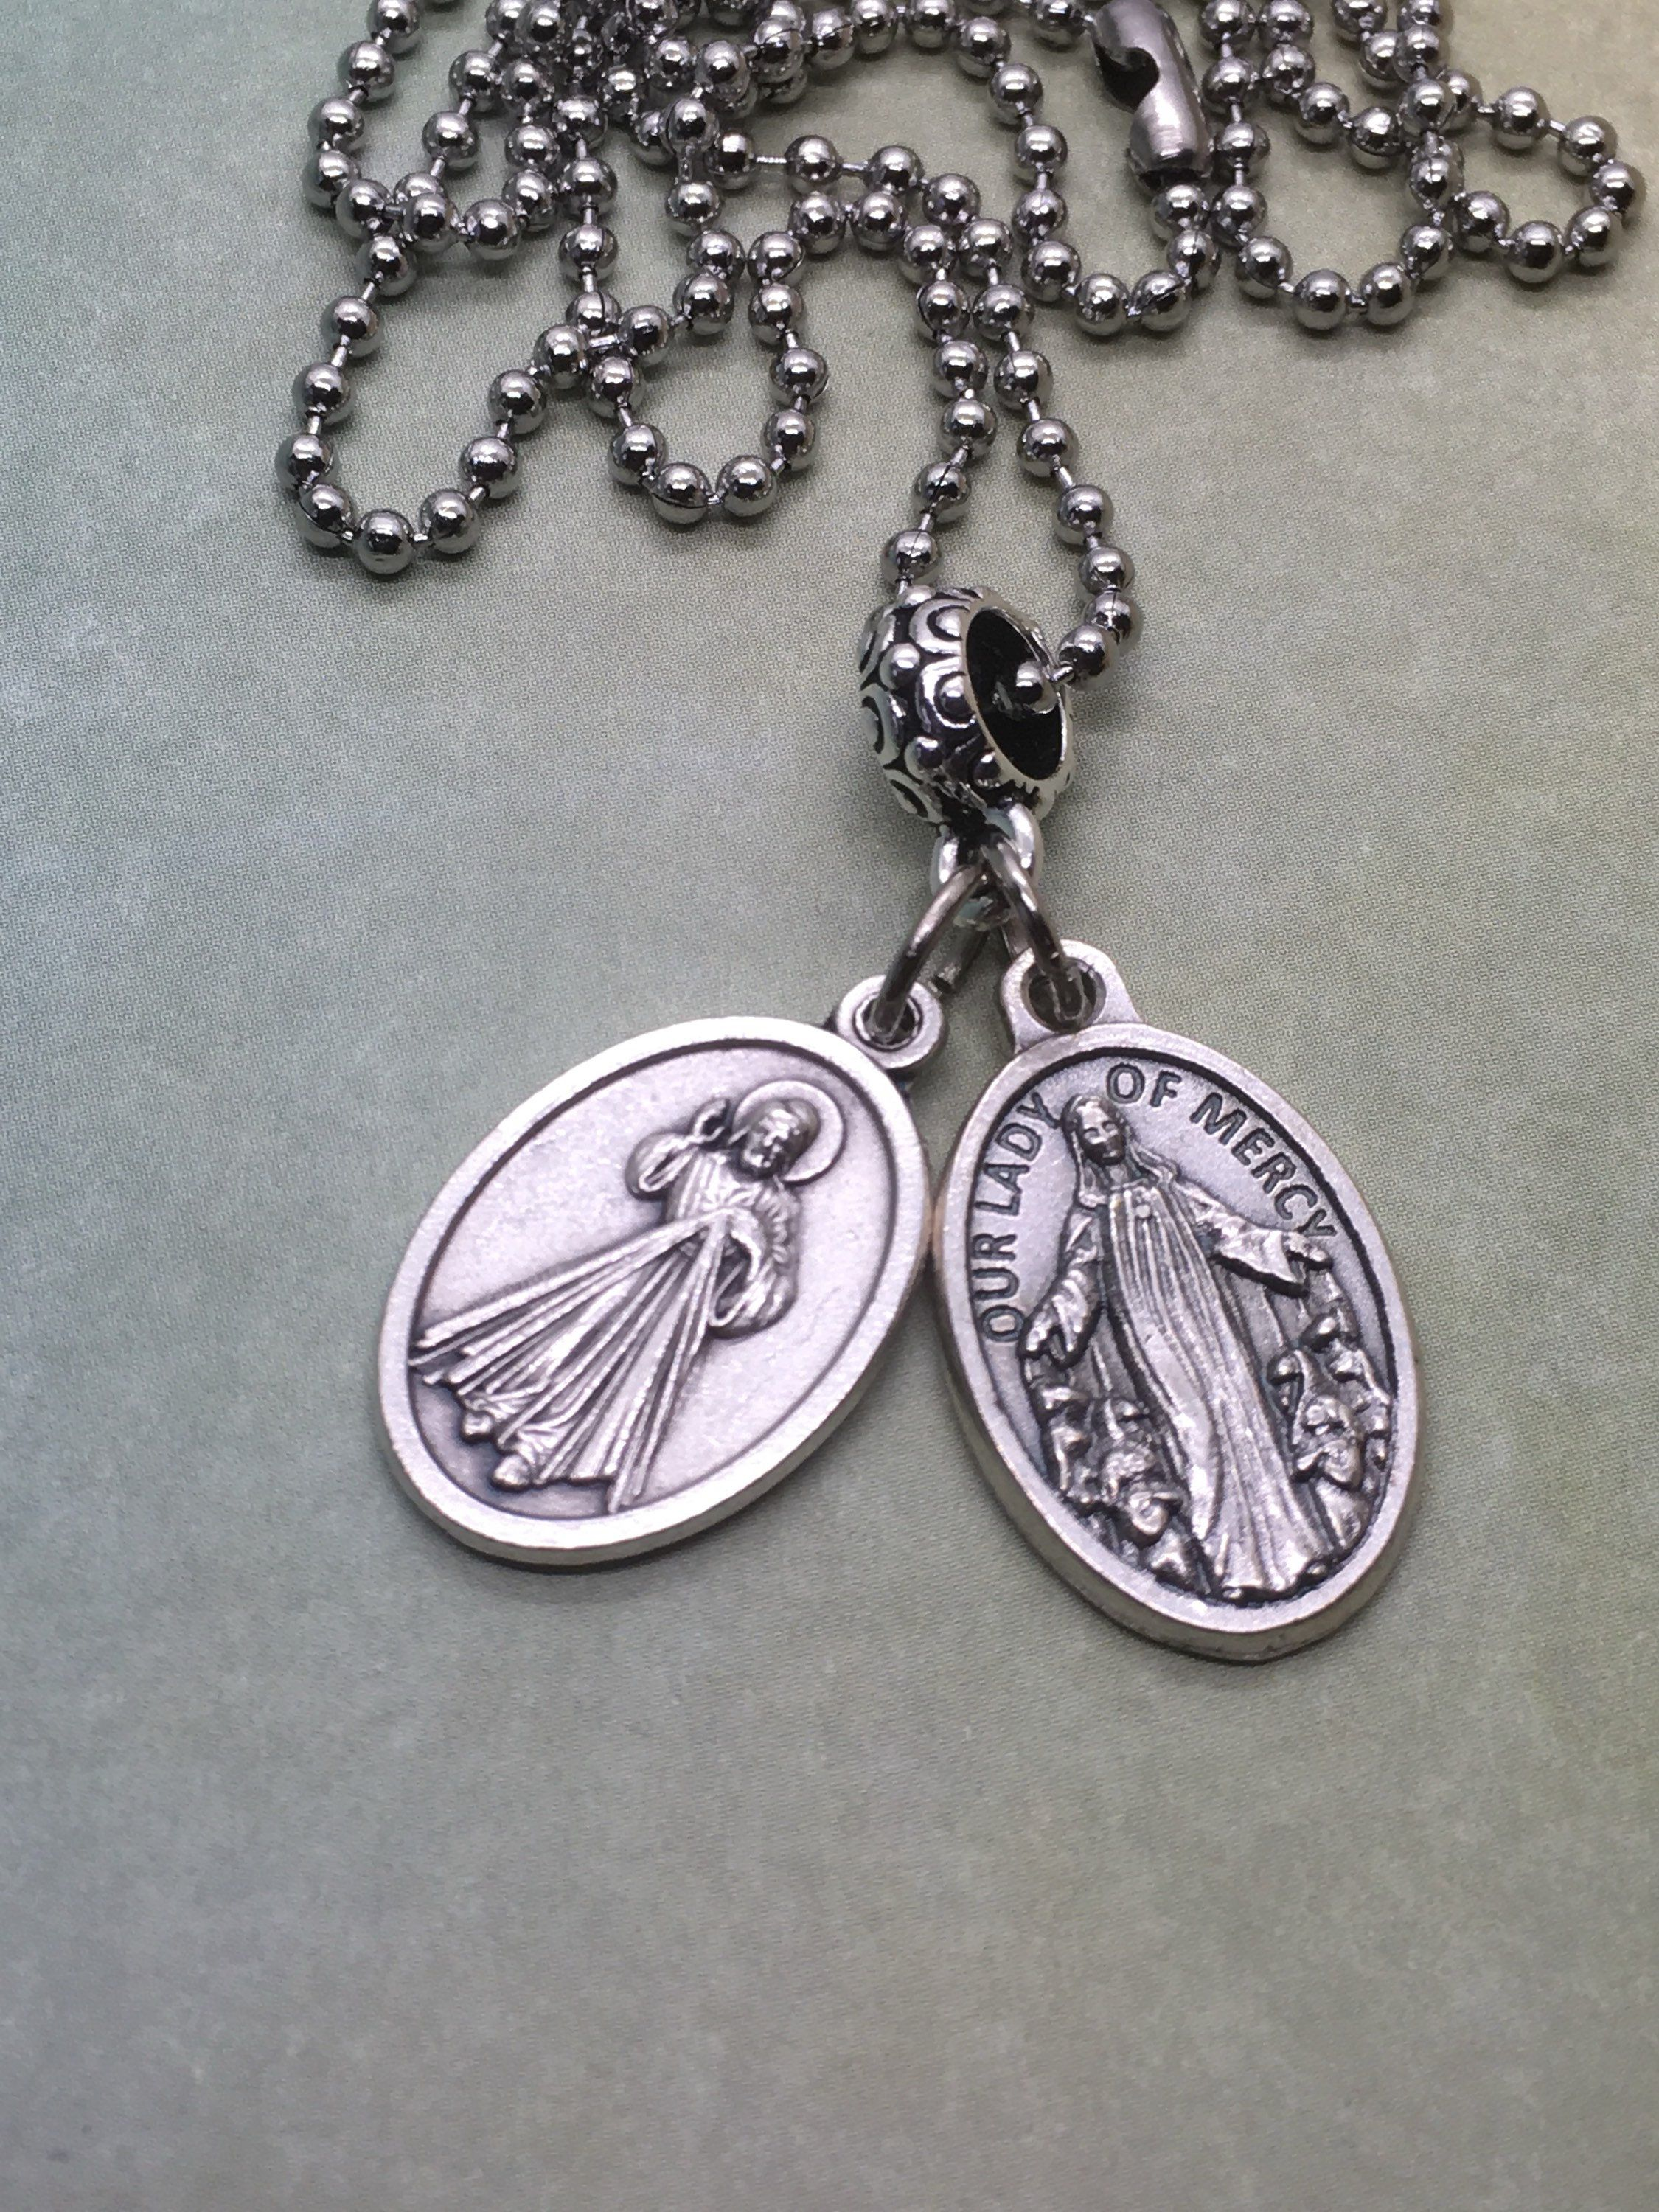 Mercy holy medal necklace 2 styles divine mercy and mother of mercy holy medal necklace 2 styles divine mercy and mother of mercy medals aloadofball Gallery